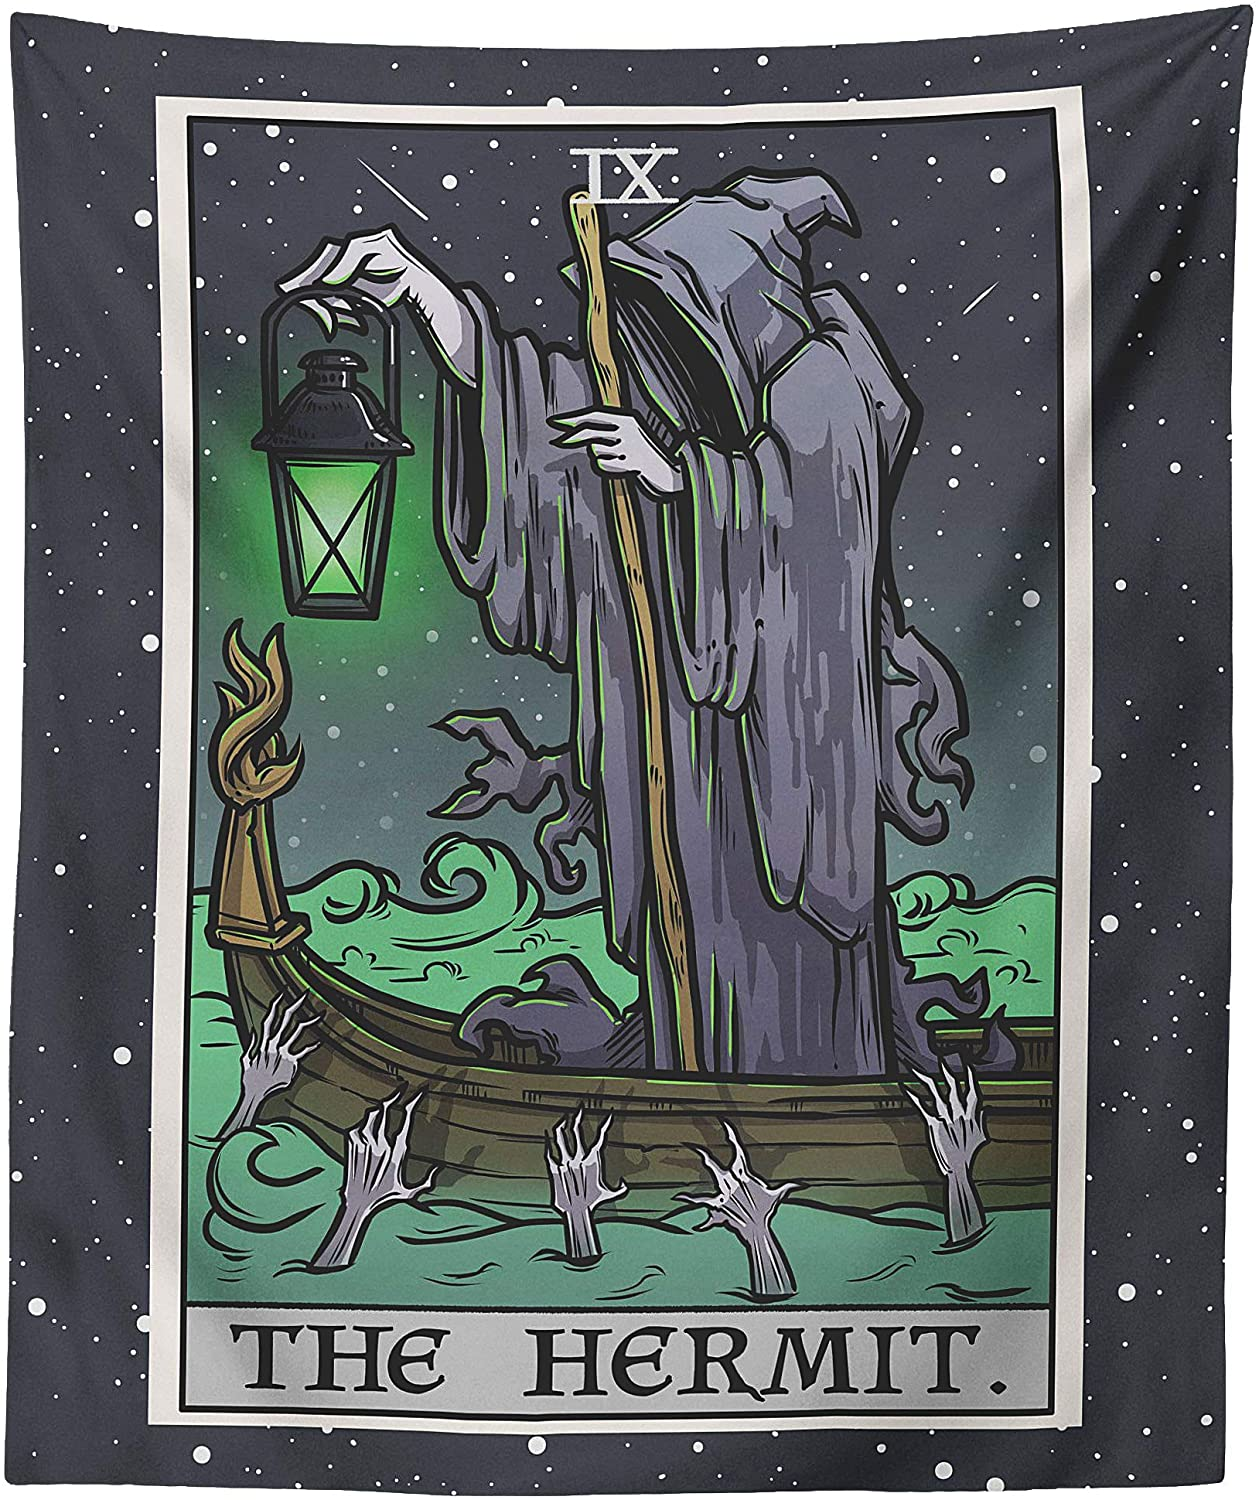 The Hermit Tarot Card Tapestry - Grim Reaper - Gothic Halloween Home Decor Wall Hanging (60